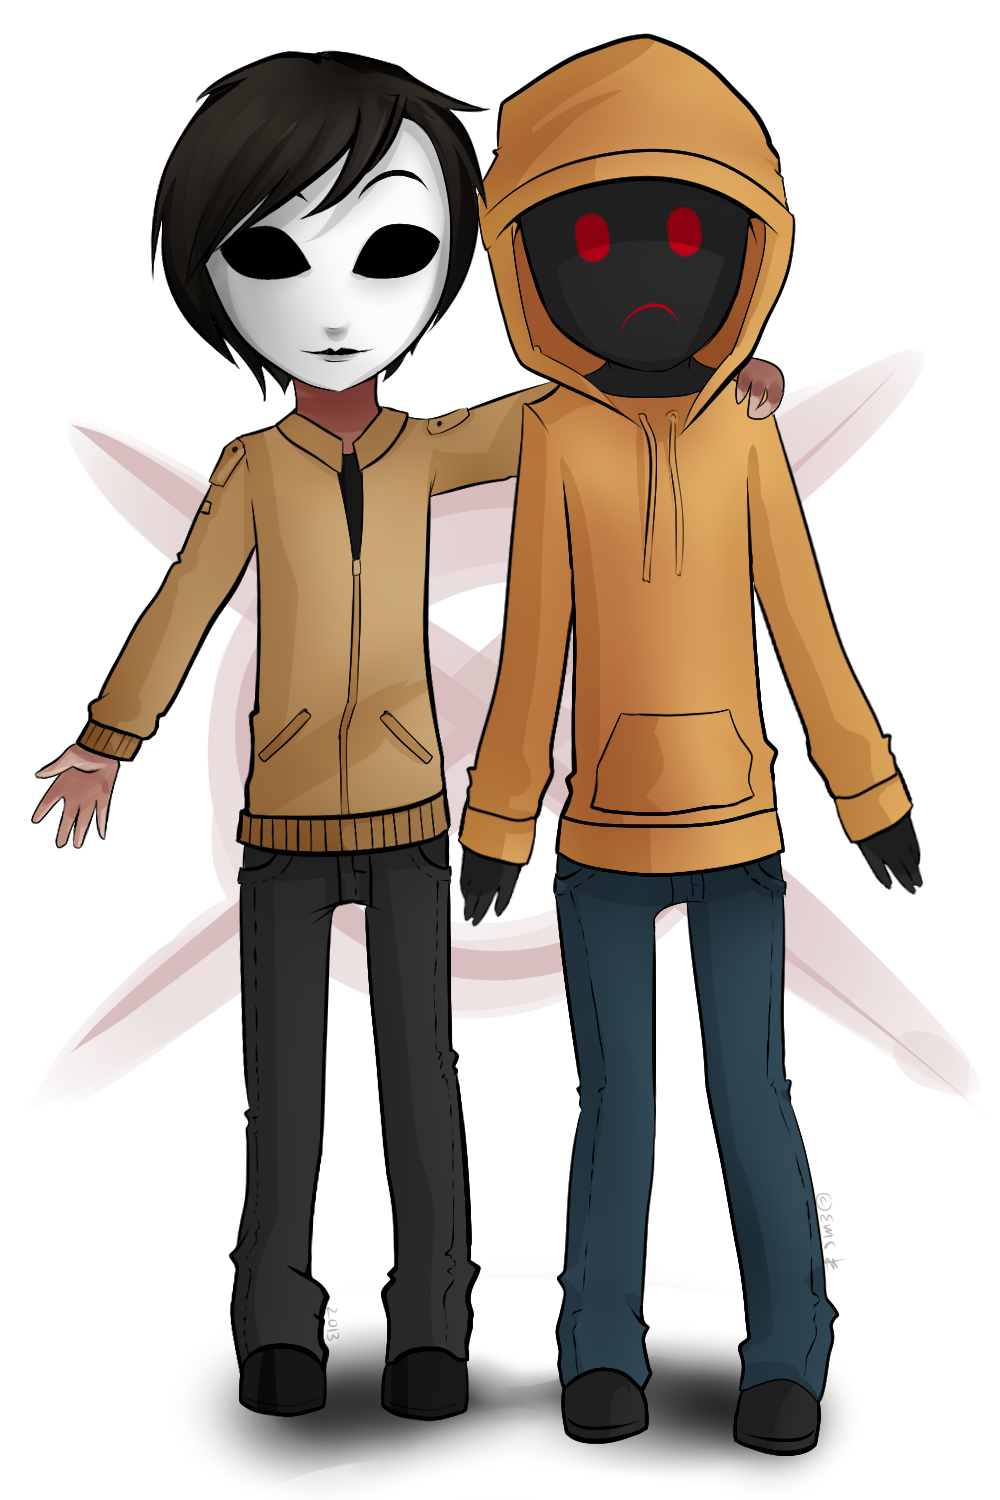 clipart royalty free stock Masky and Hoodie Proxies